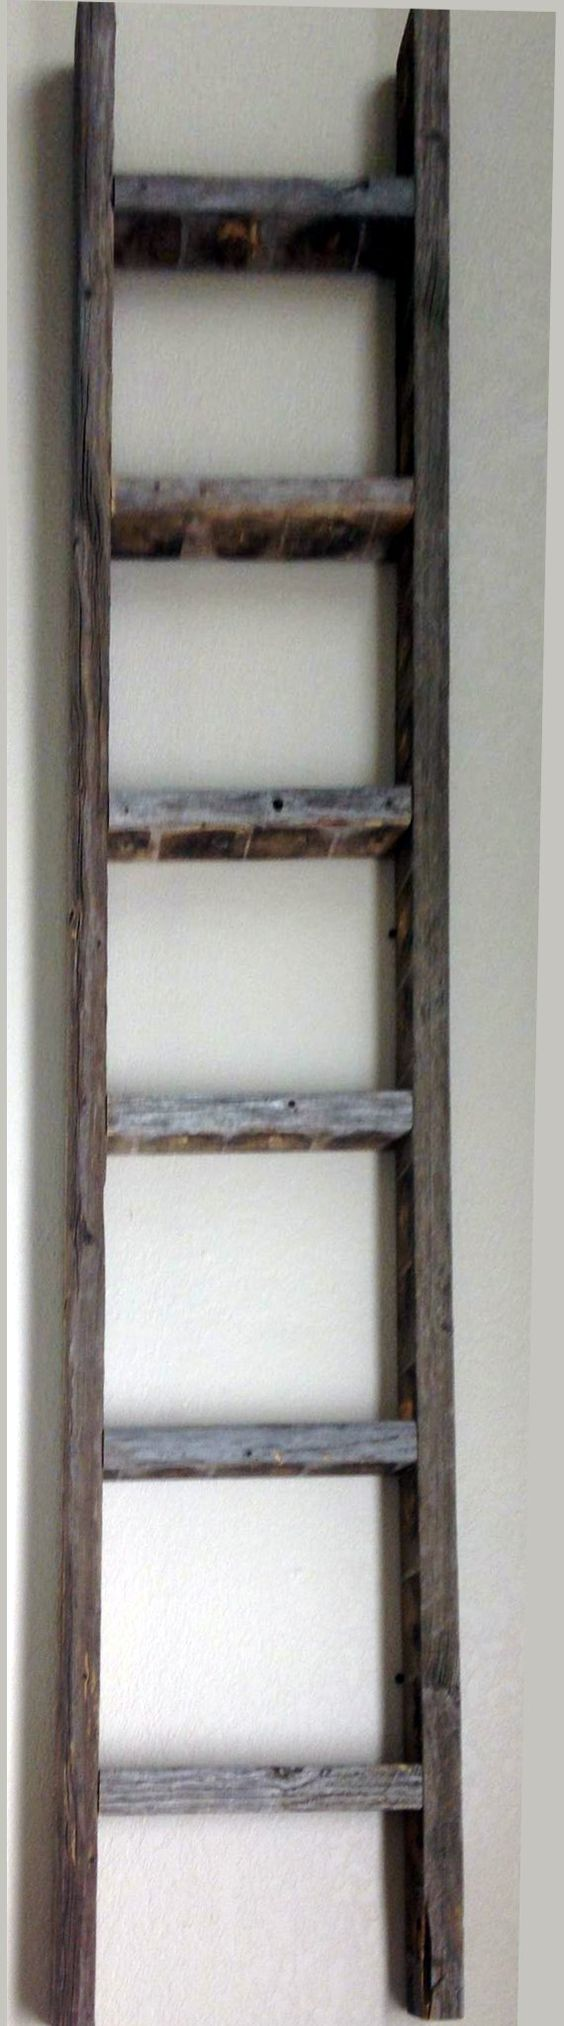 Decorative ladders old wooden ladders and wooden ladders for Decor ladder